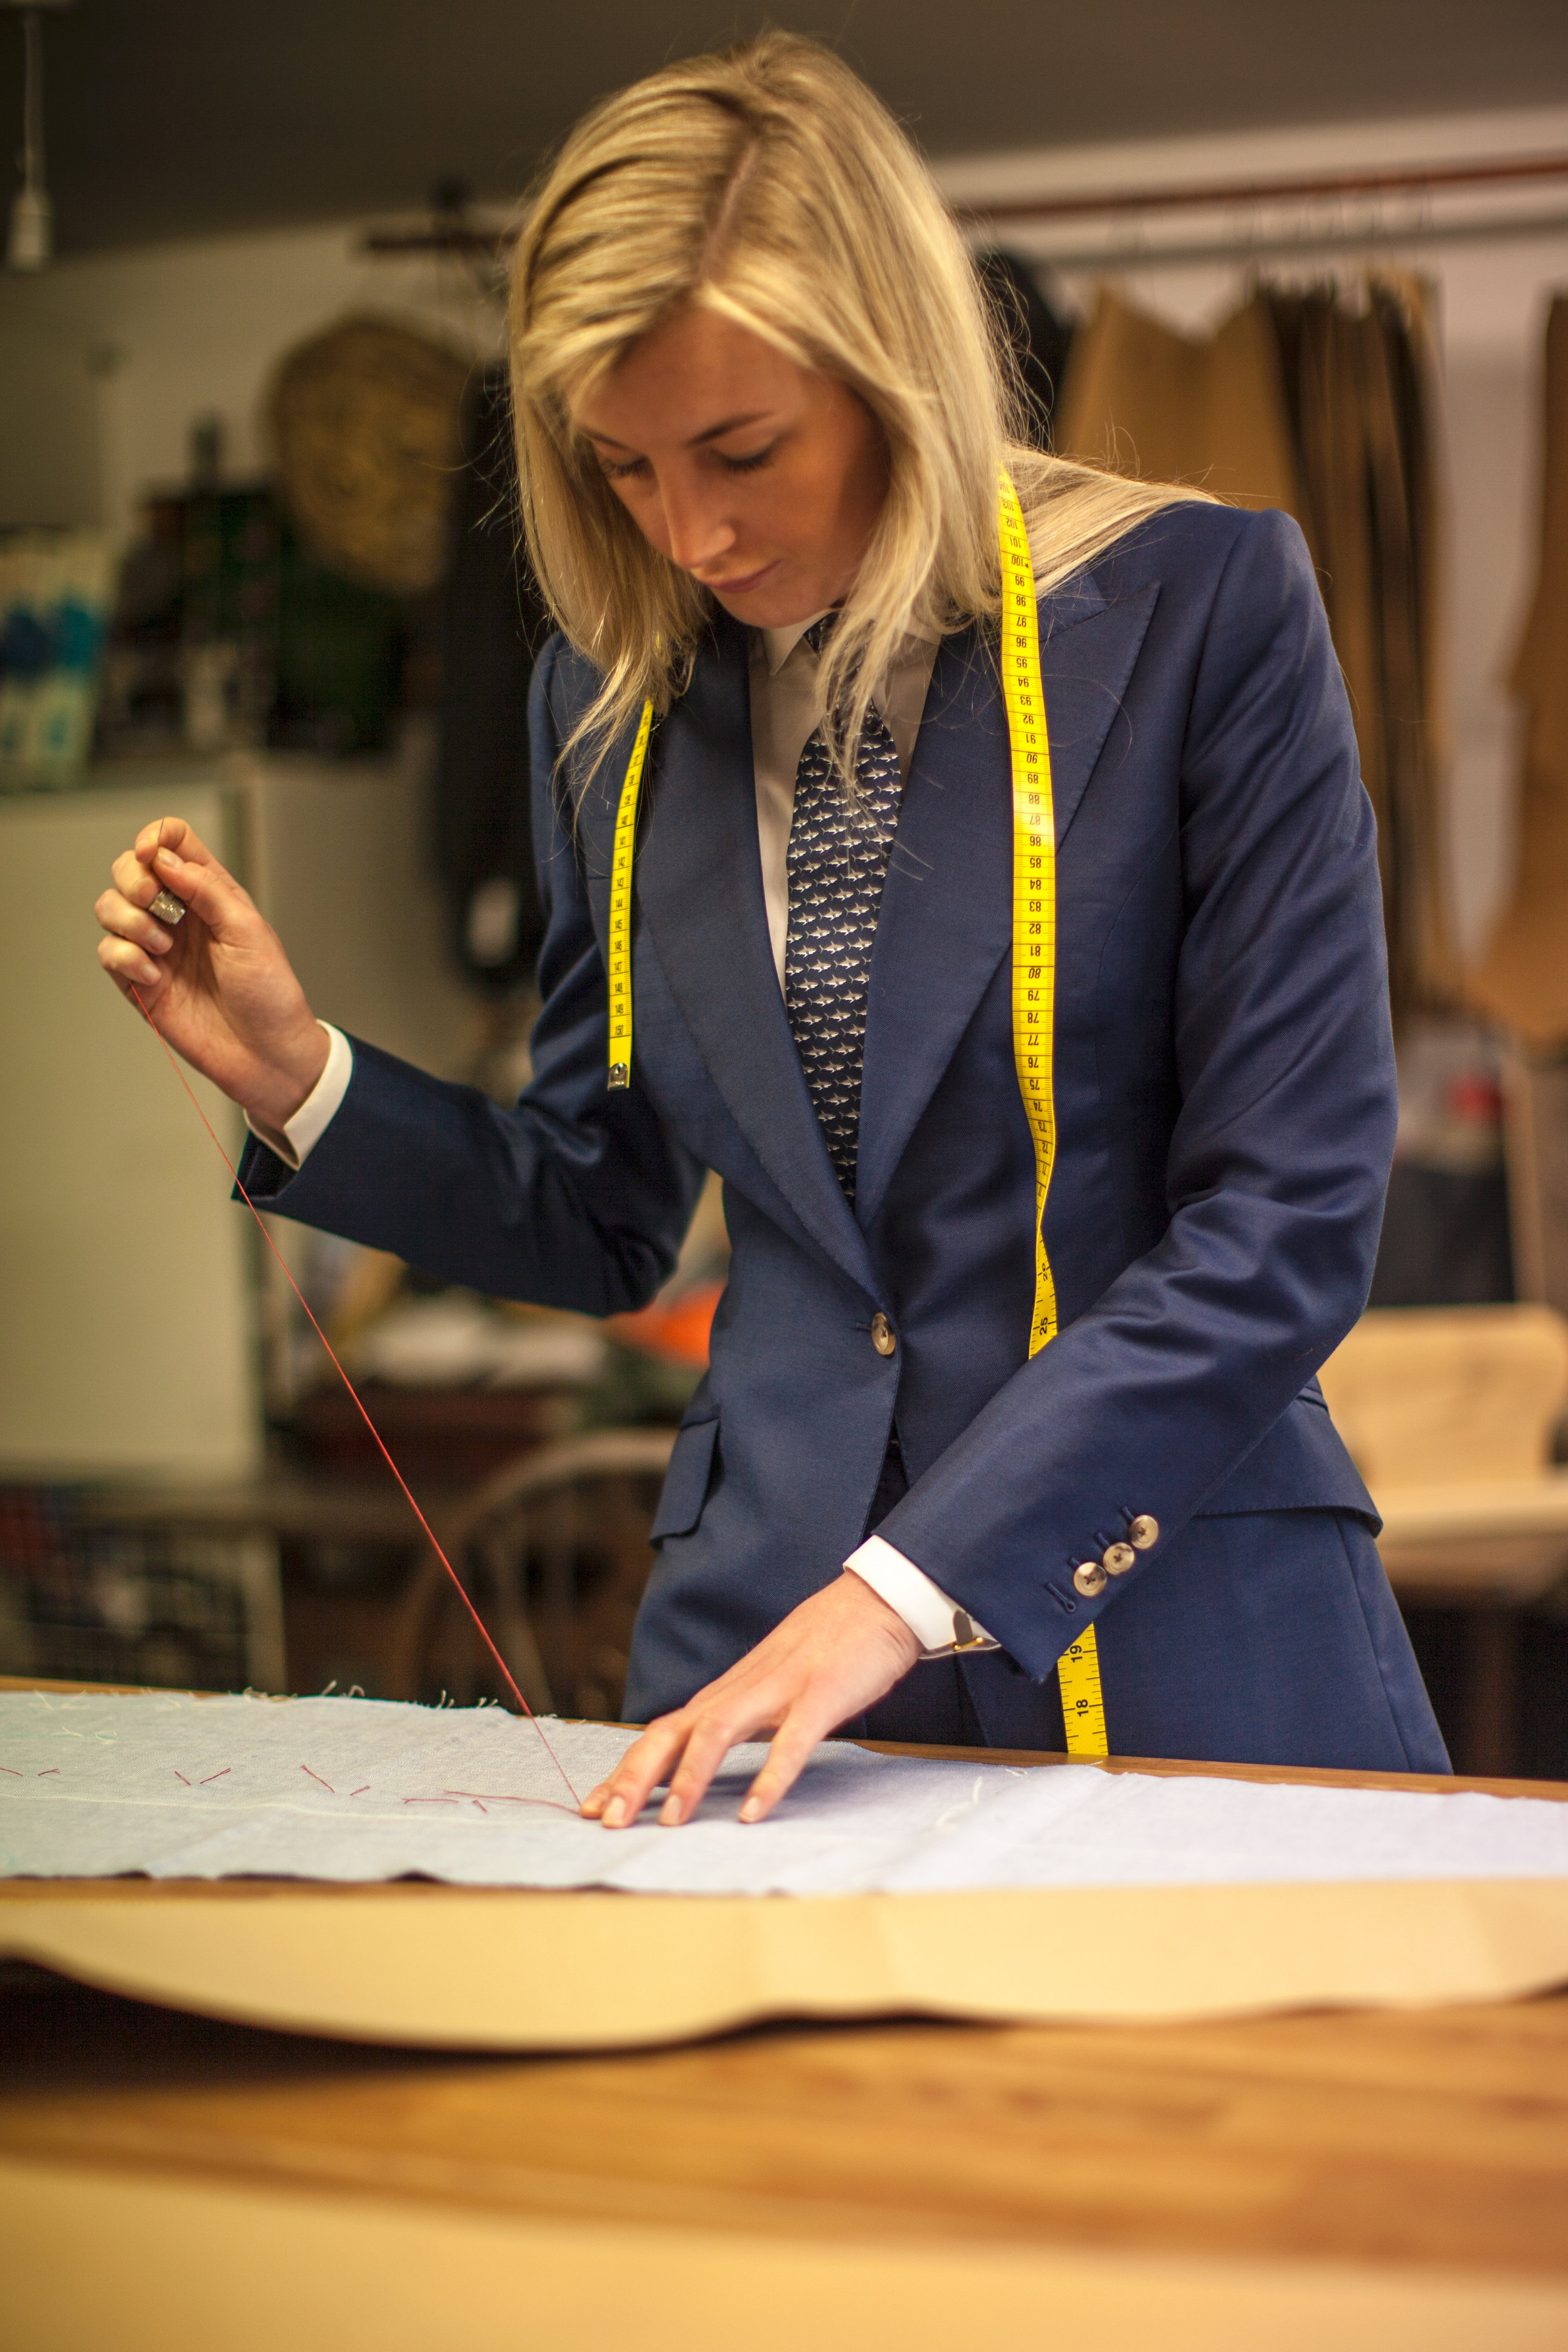 Completion - Caroline Andrew London bespoke suits take around 75 hours to complete over a period of 8-10 weeks. They are hand finished, complete with buttons and buttonholes strengthened with Beeswax adhering to long standing industry tradition. The suit goes through its final stage where the specially trained presser completes the process by moulding, steaming and pressing the suit into its final form ready for the customer.